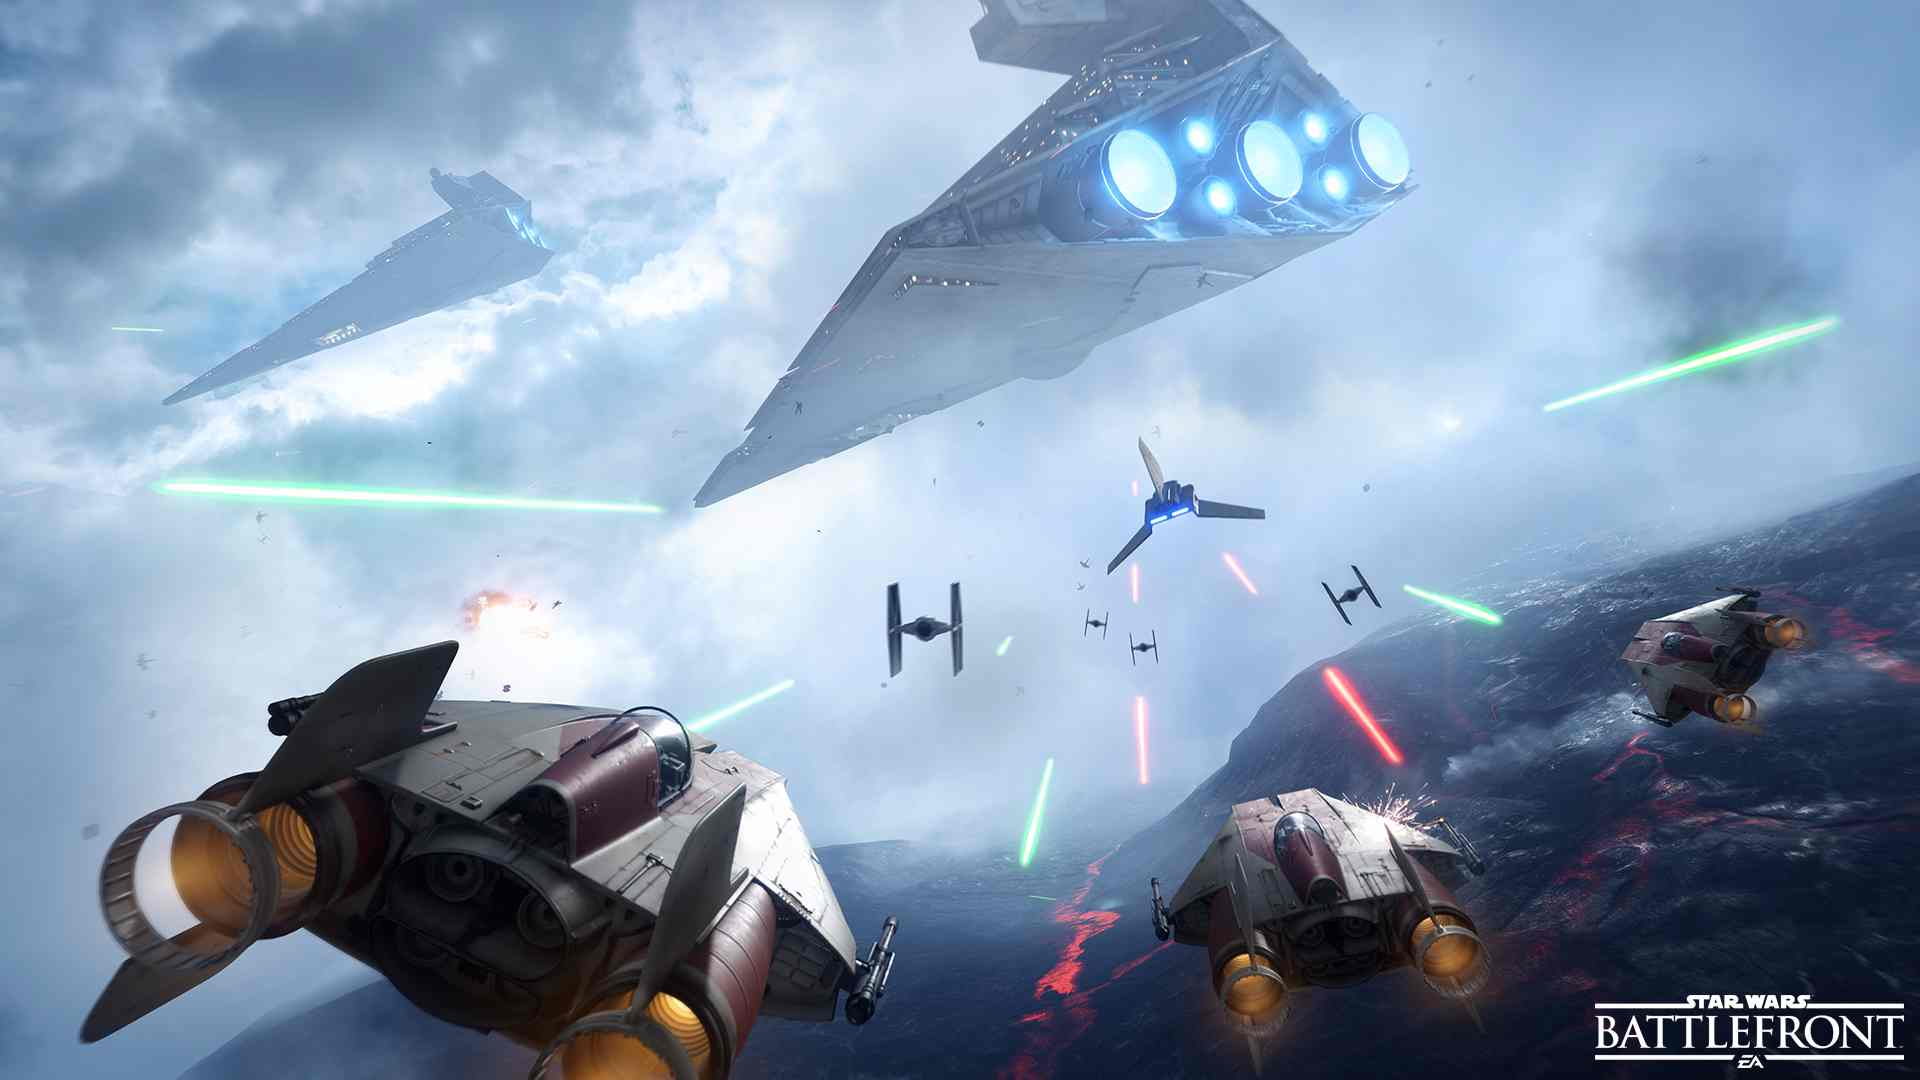 star wars battlefront death star dlc new game mode